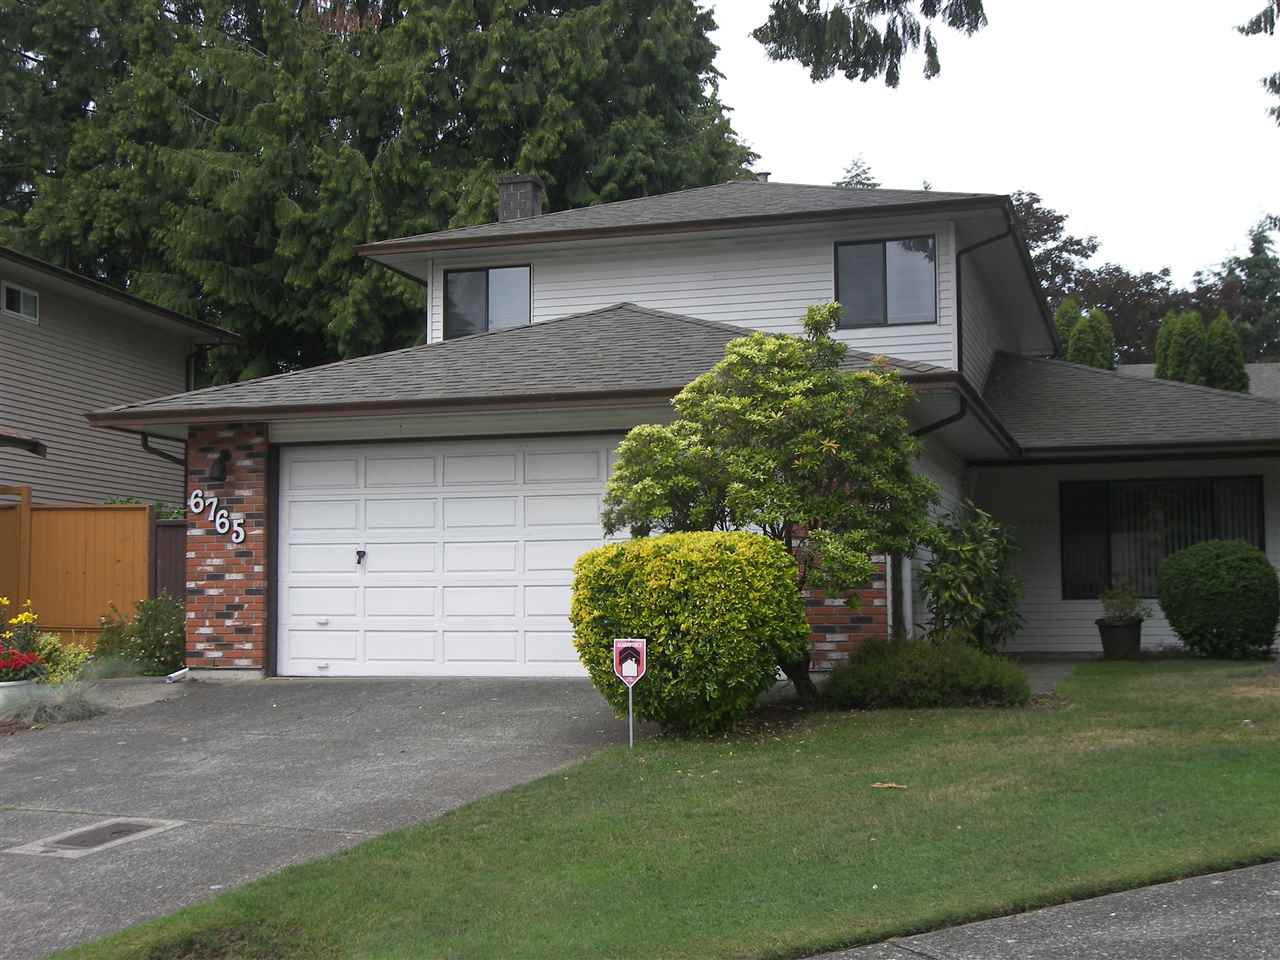 Main Photo: 6765 129TH Street in Surrey: West Newton House for sale : MLS®# R2082590